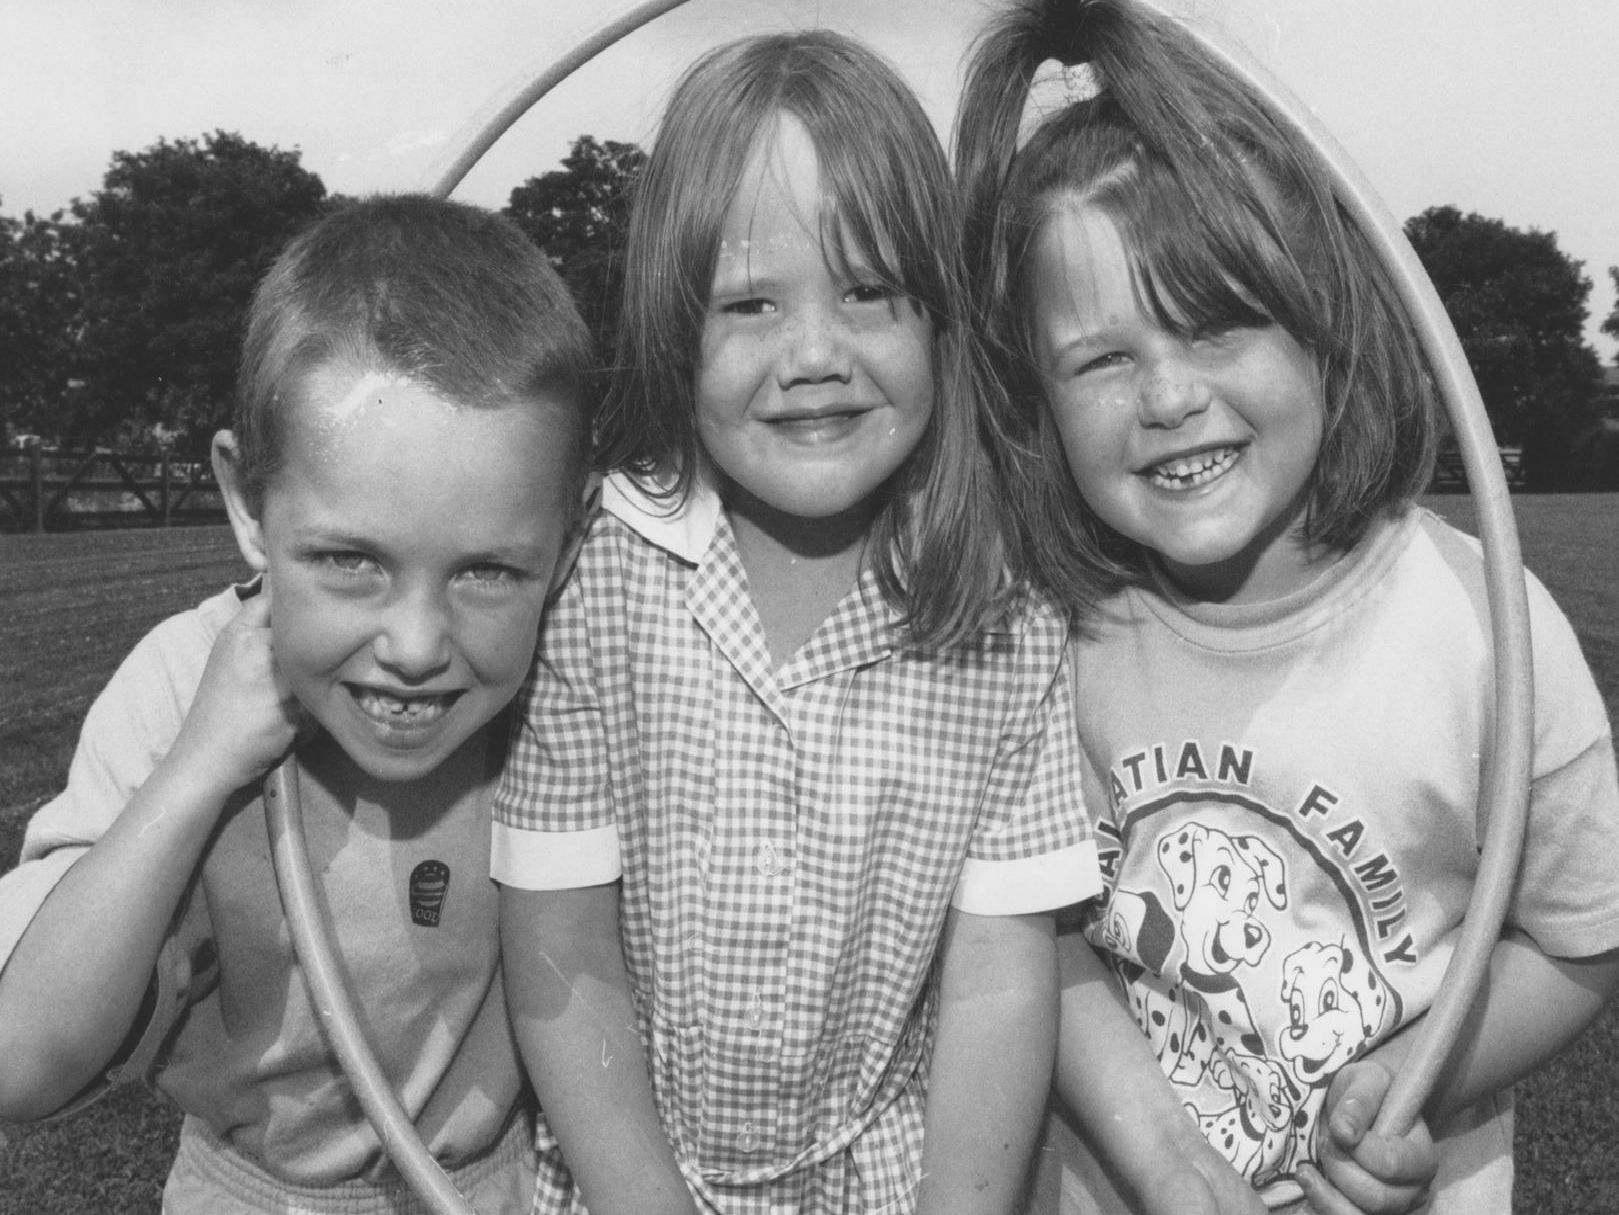 Taking a break from the hoopla at Filey Junior School's Infants Sports Day in July, 1997, are, left to right, Daniel Hudson, Stacey Maud and Zoe Spriggs.